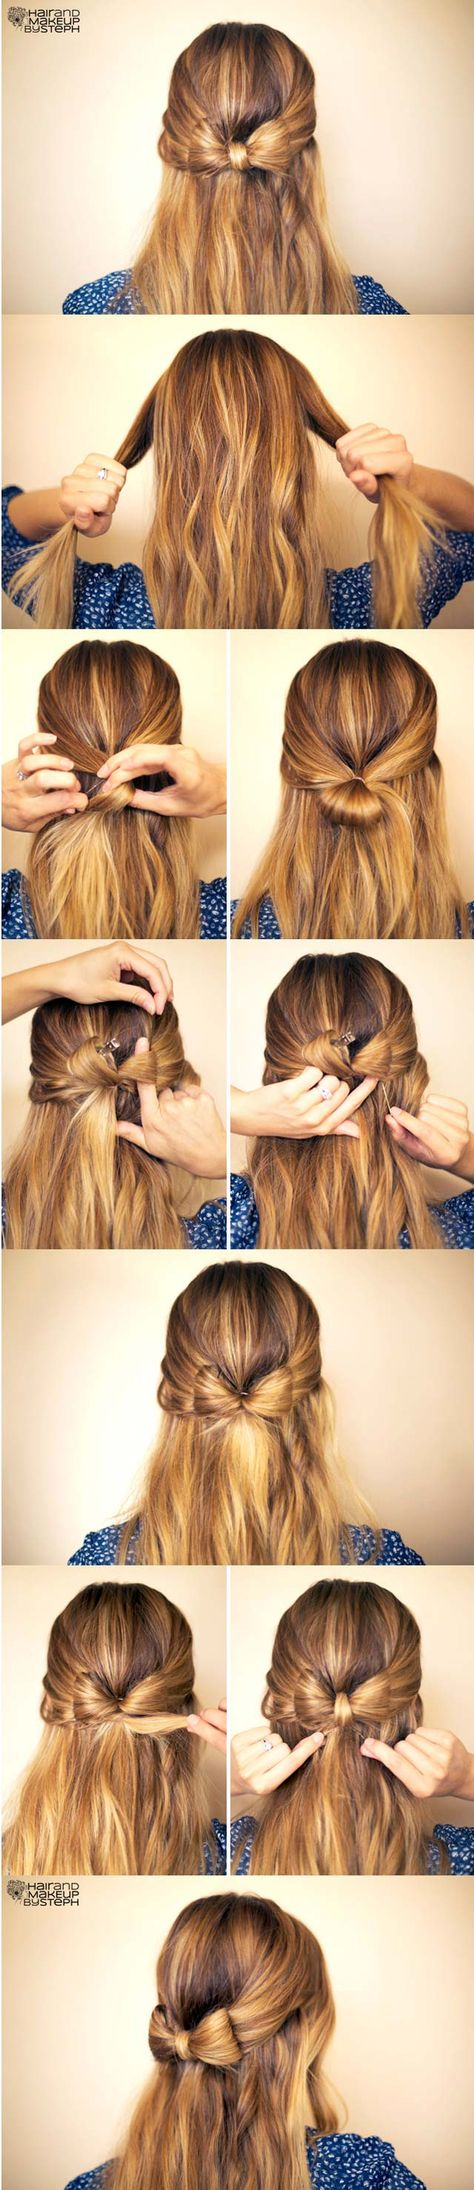 DIY! Your Step-by-Step for the Hair.